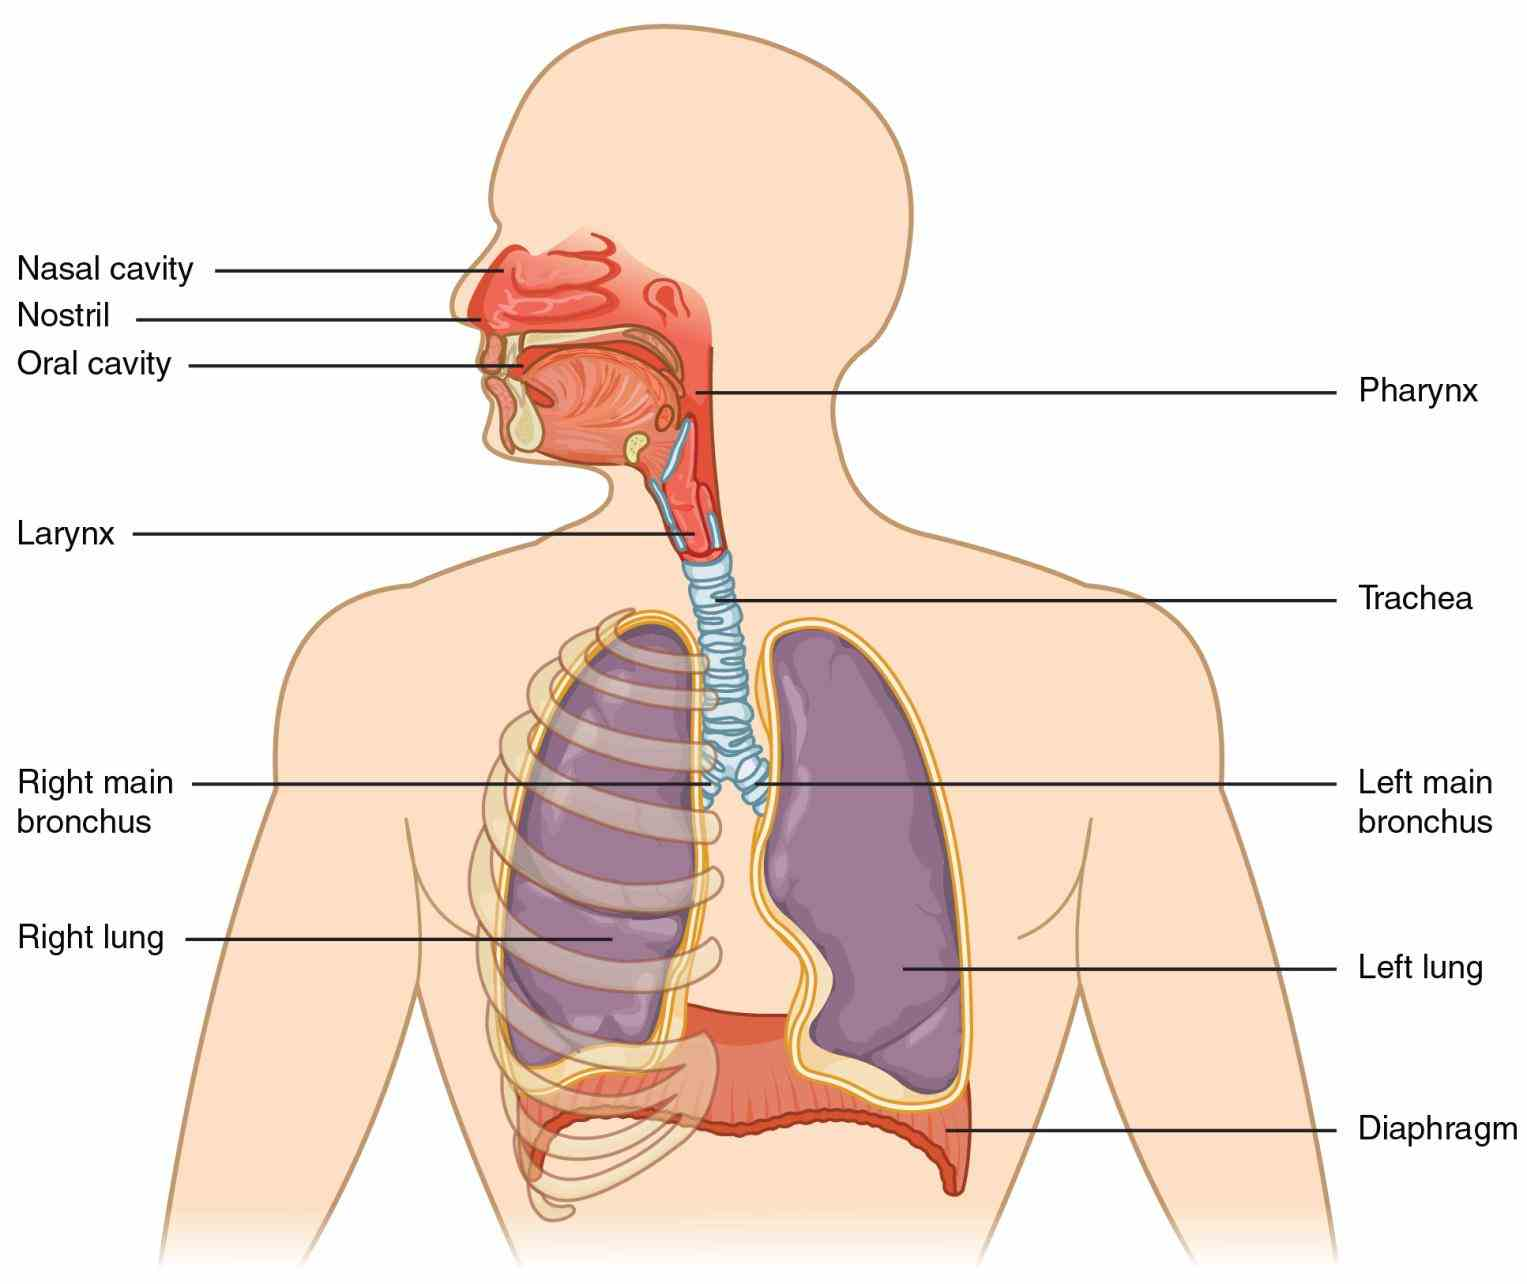 structure and function the major body are groups organs that allow  in Major Systems Of Human Body Anatomy this